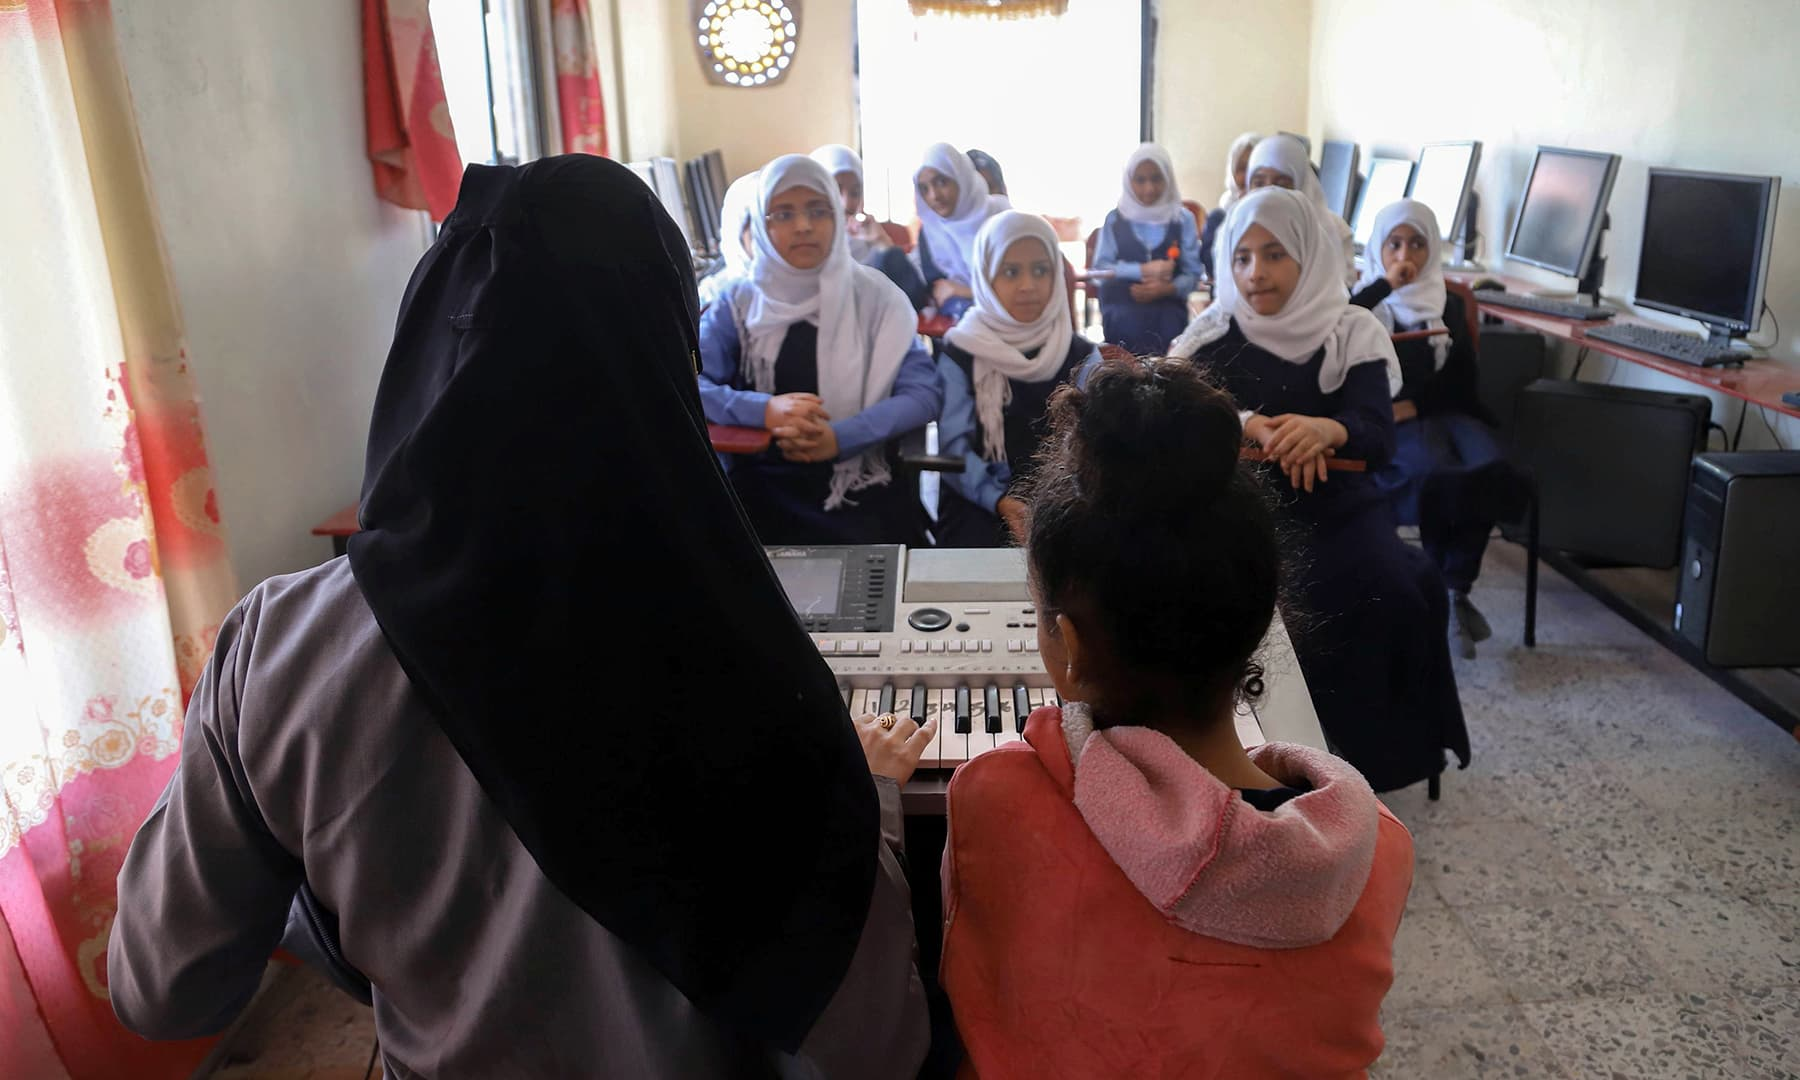 A classroom full of girls eager to put the horrors of war behind them by filling their days with music. — AFP